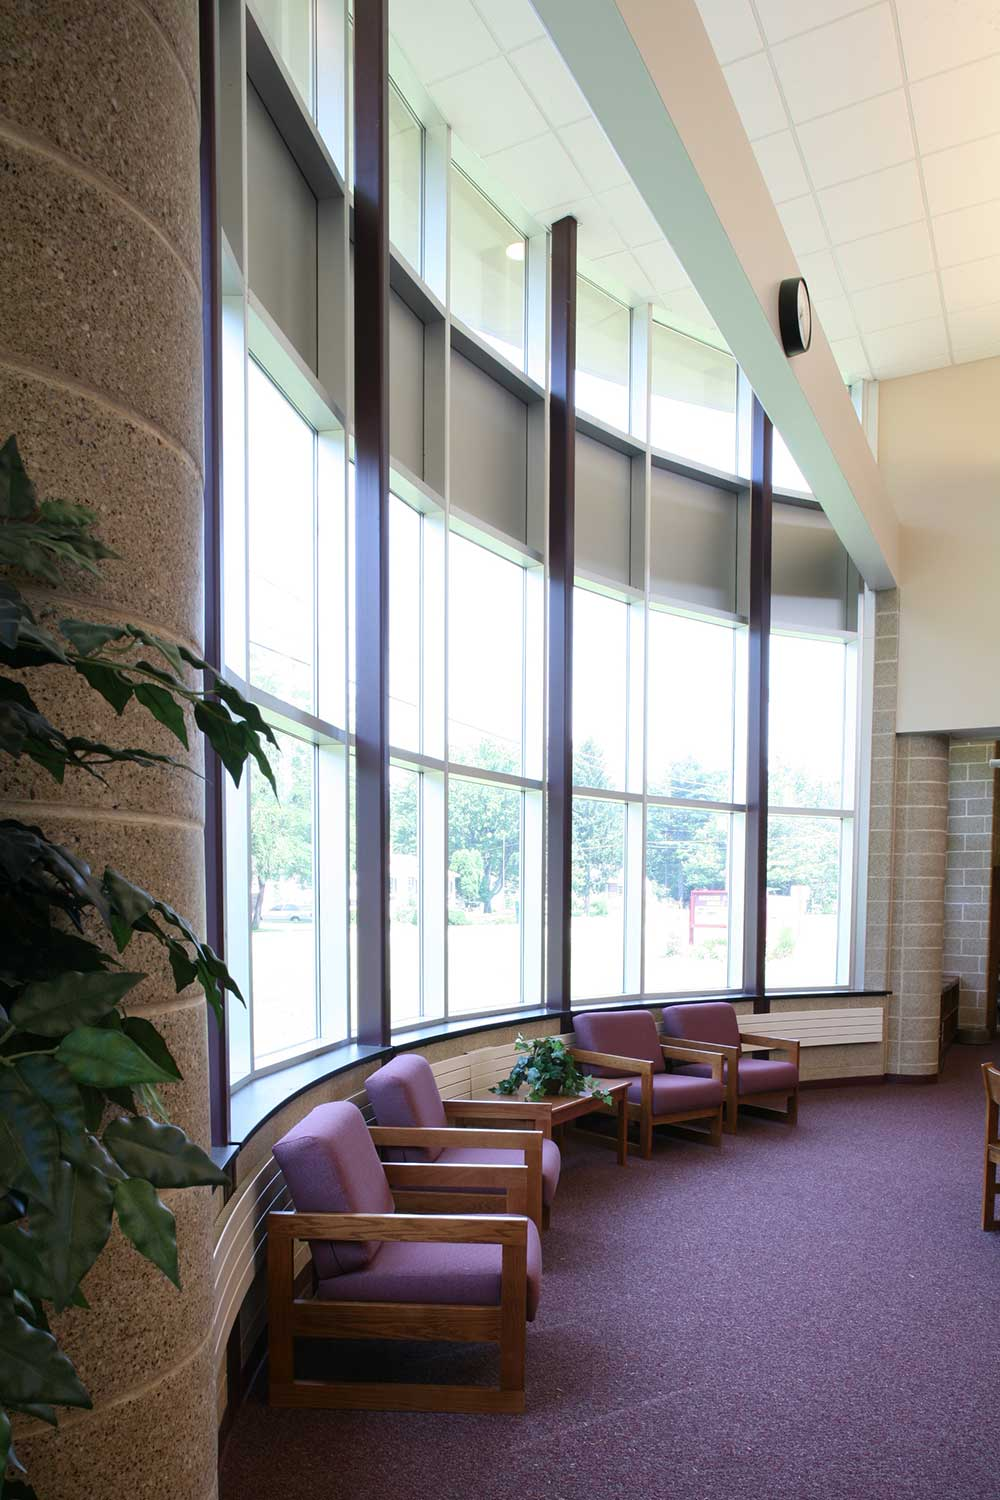 The Burnt Hills-Ballston Lake school design includes a vestibule with a glass curtain wall.